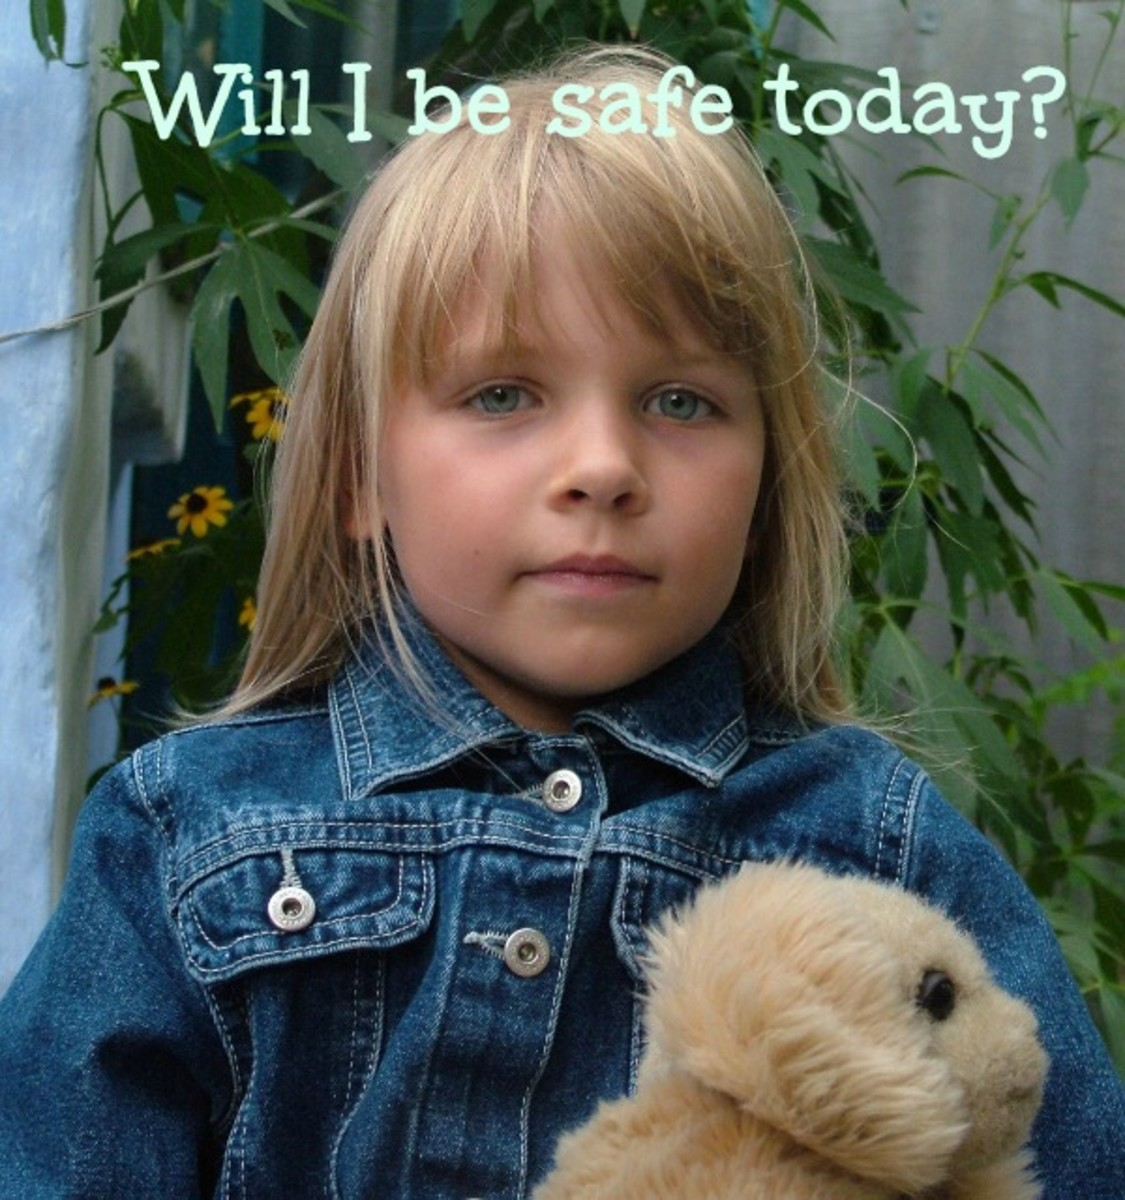 Children sadly wonder about how safe they will be on any given day.